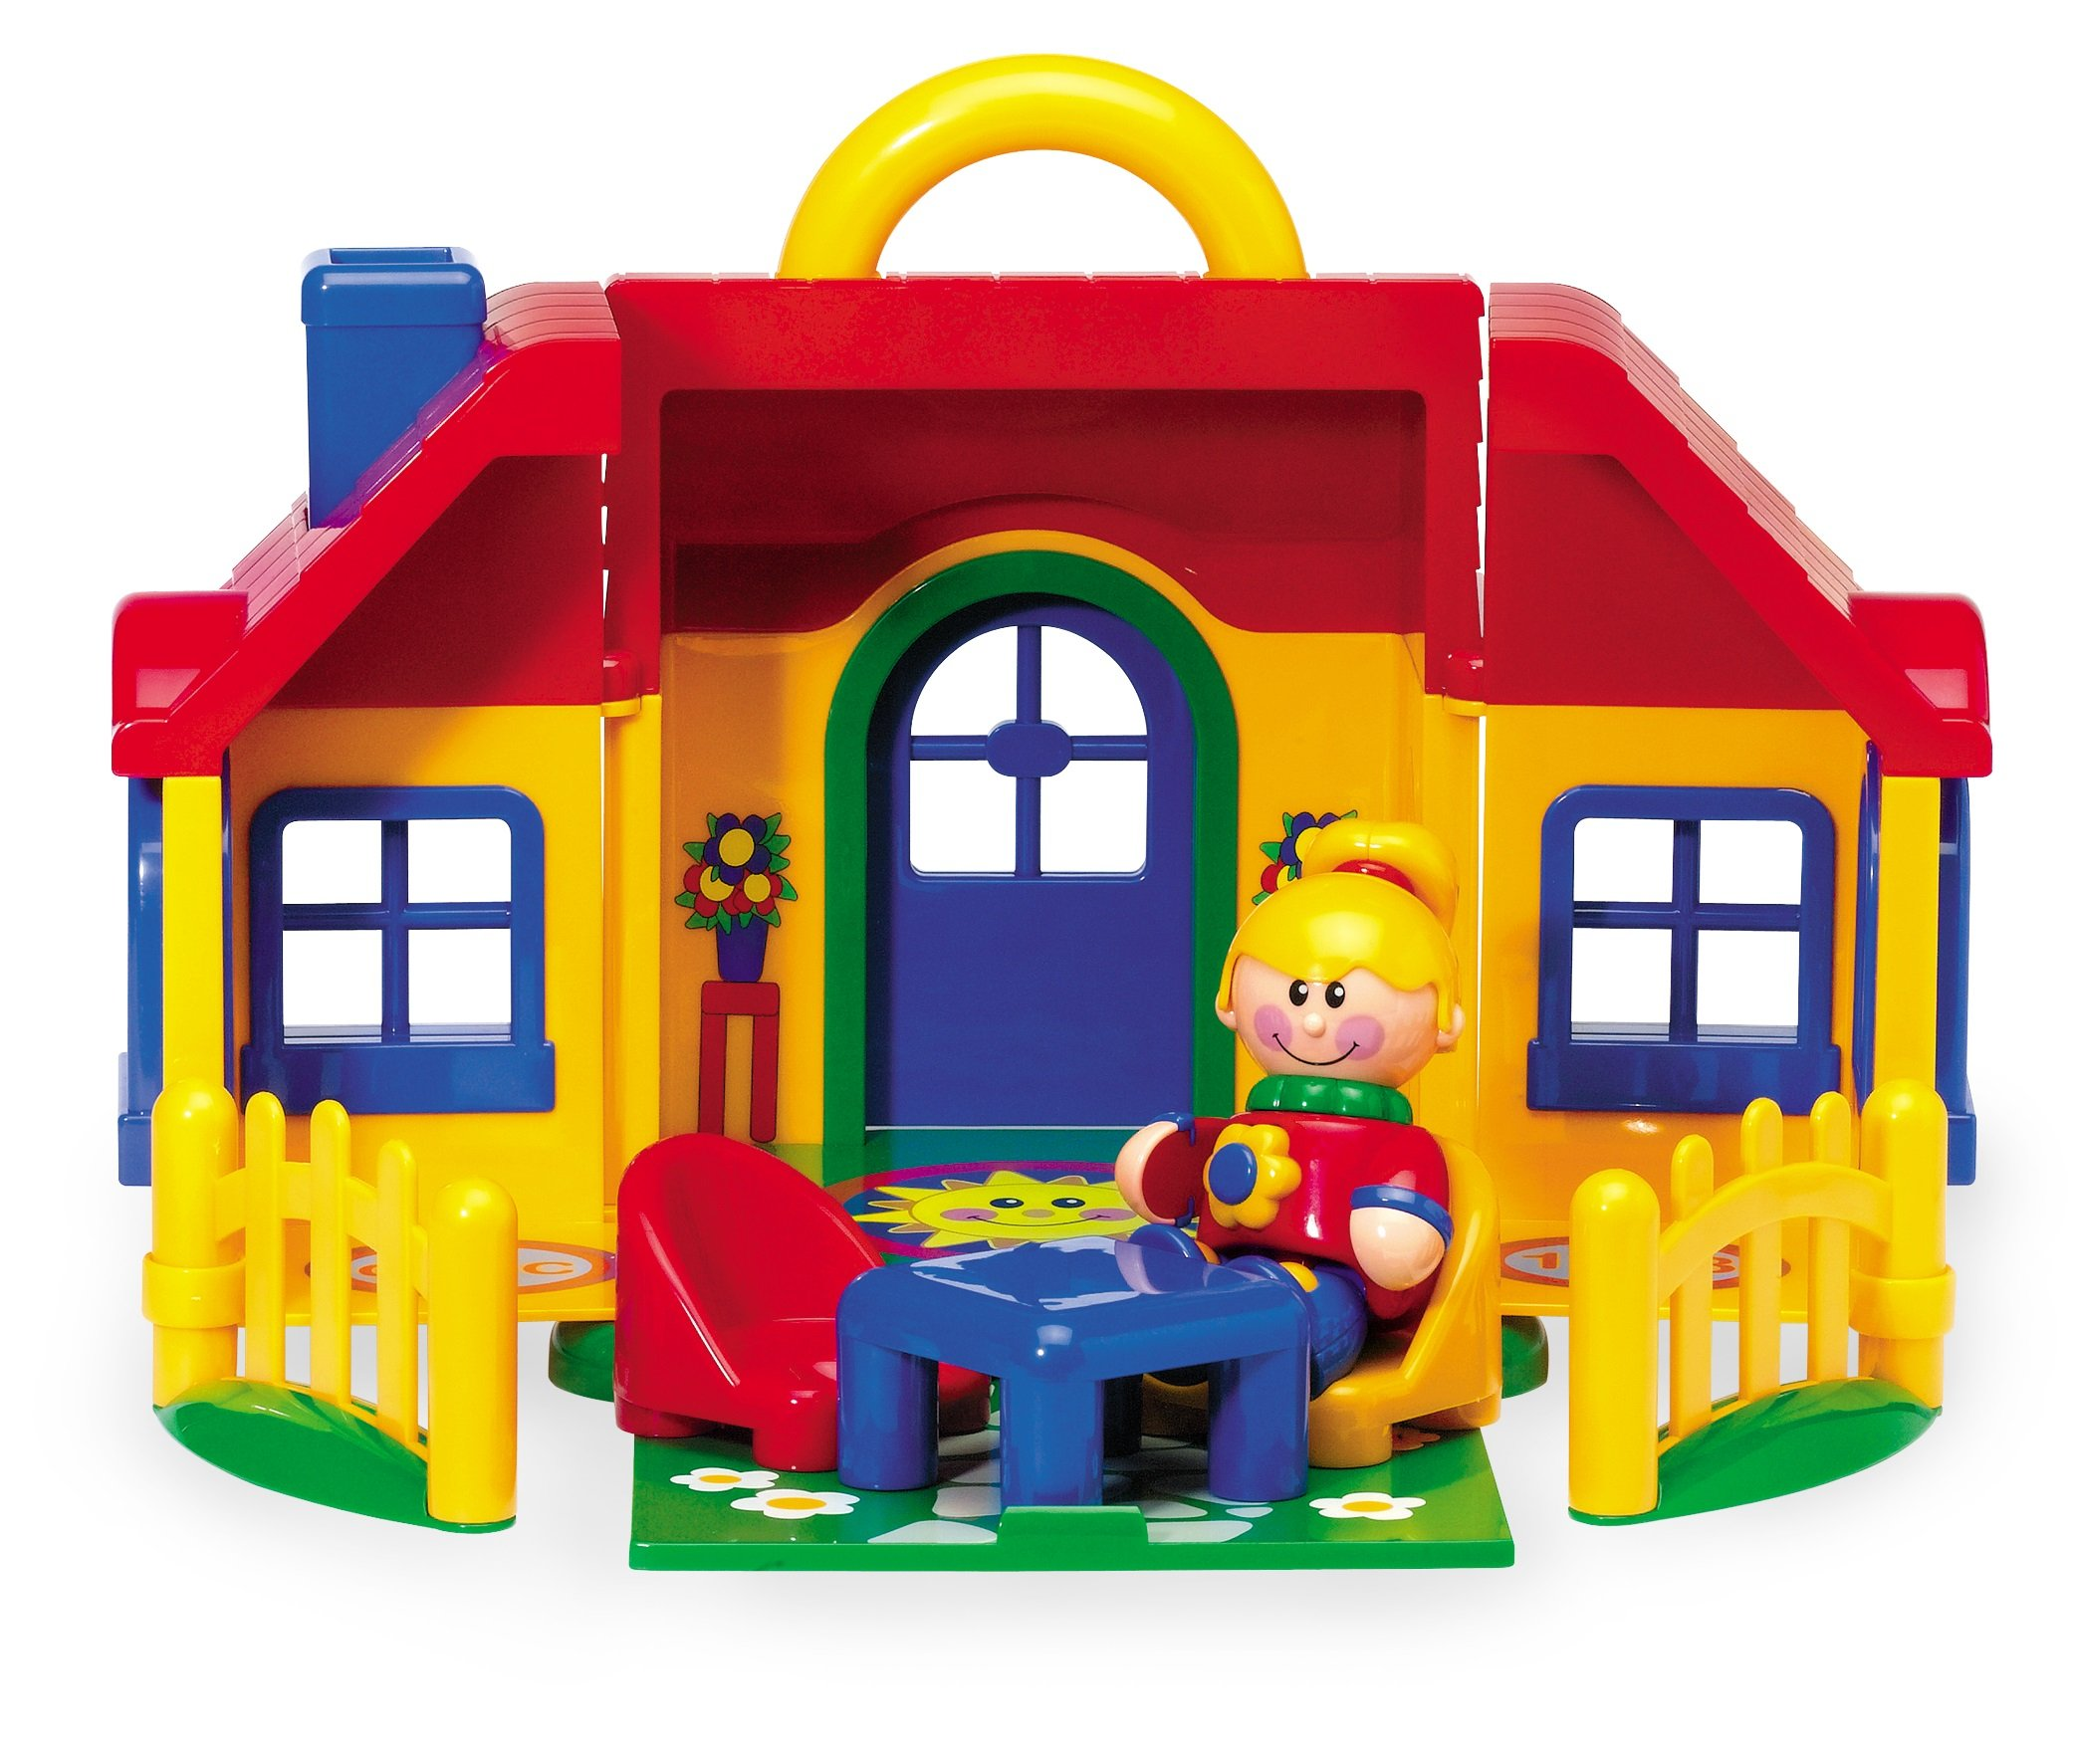 Tolo Toys First Friends Folding Play House With Carry Handle and Accessories For Ages 1 To 5 Years